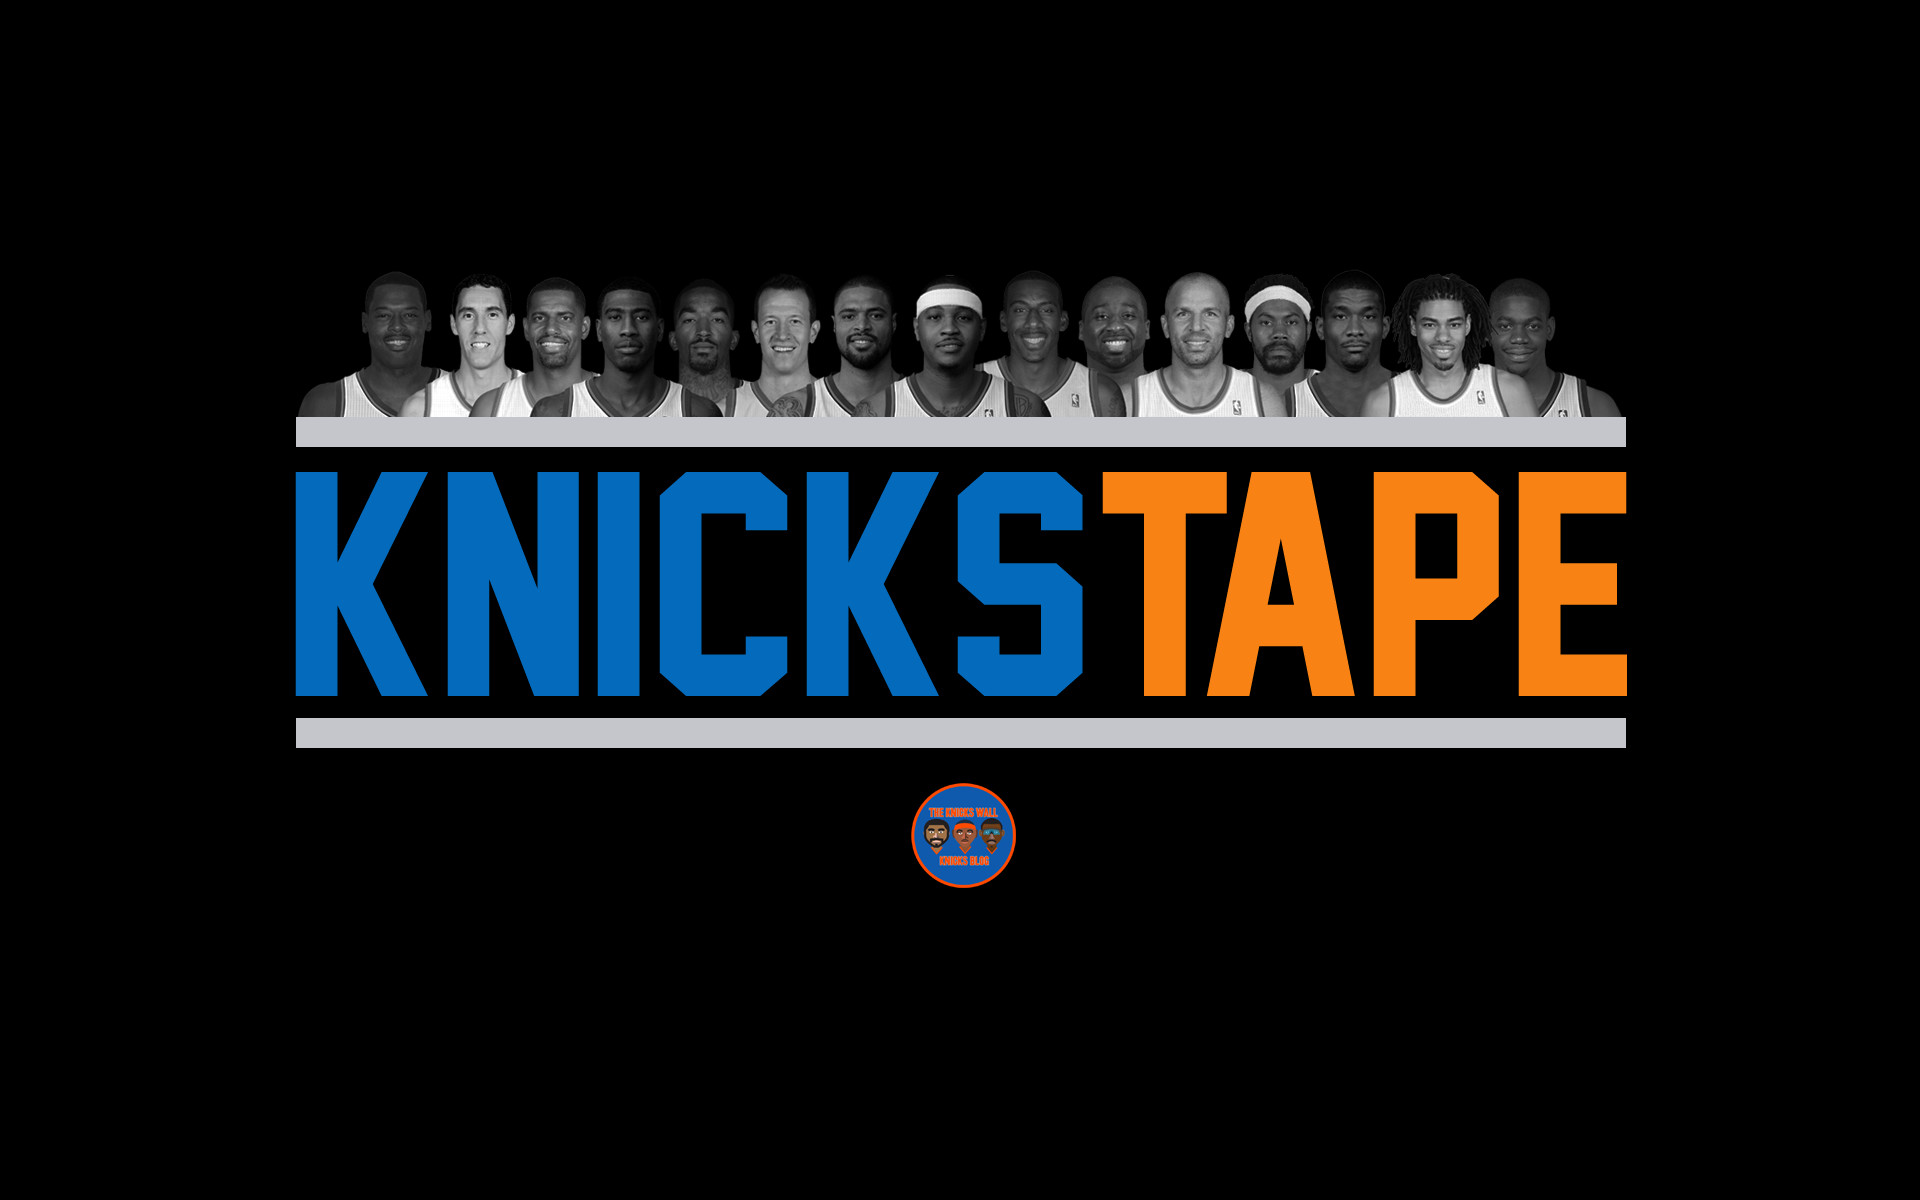 1920x1200 Knicks wallpaper - 895454 Knicks 2013 Wallpaper · New York ...